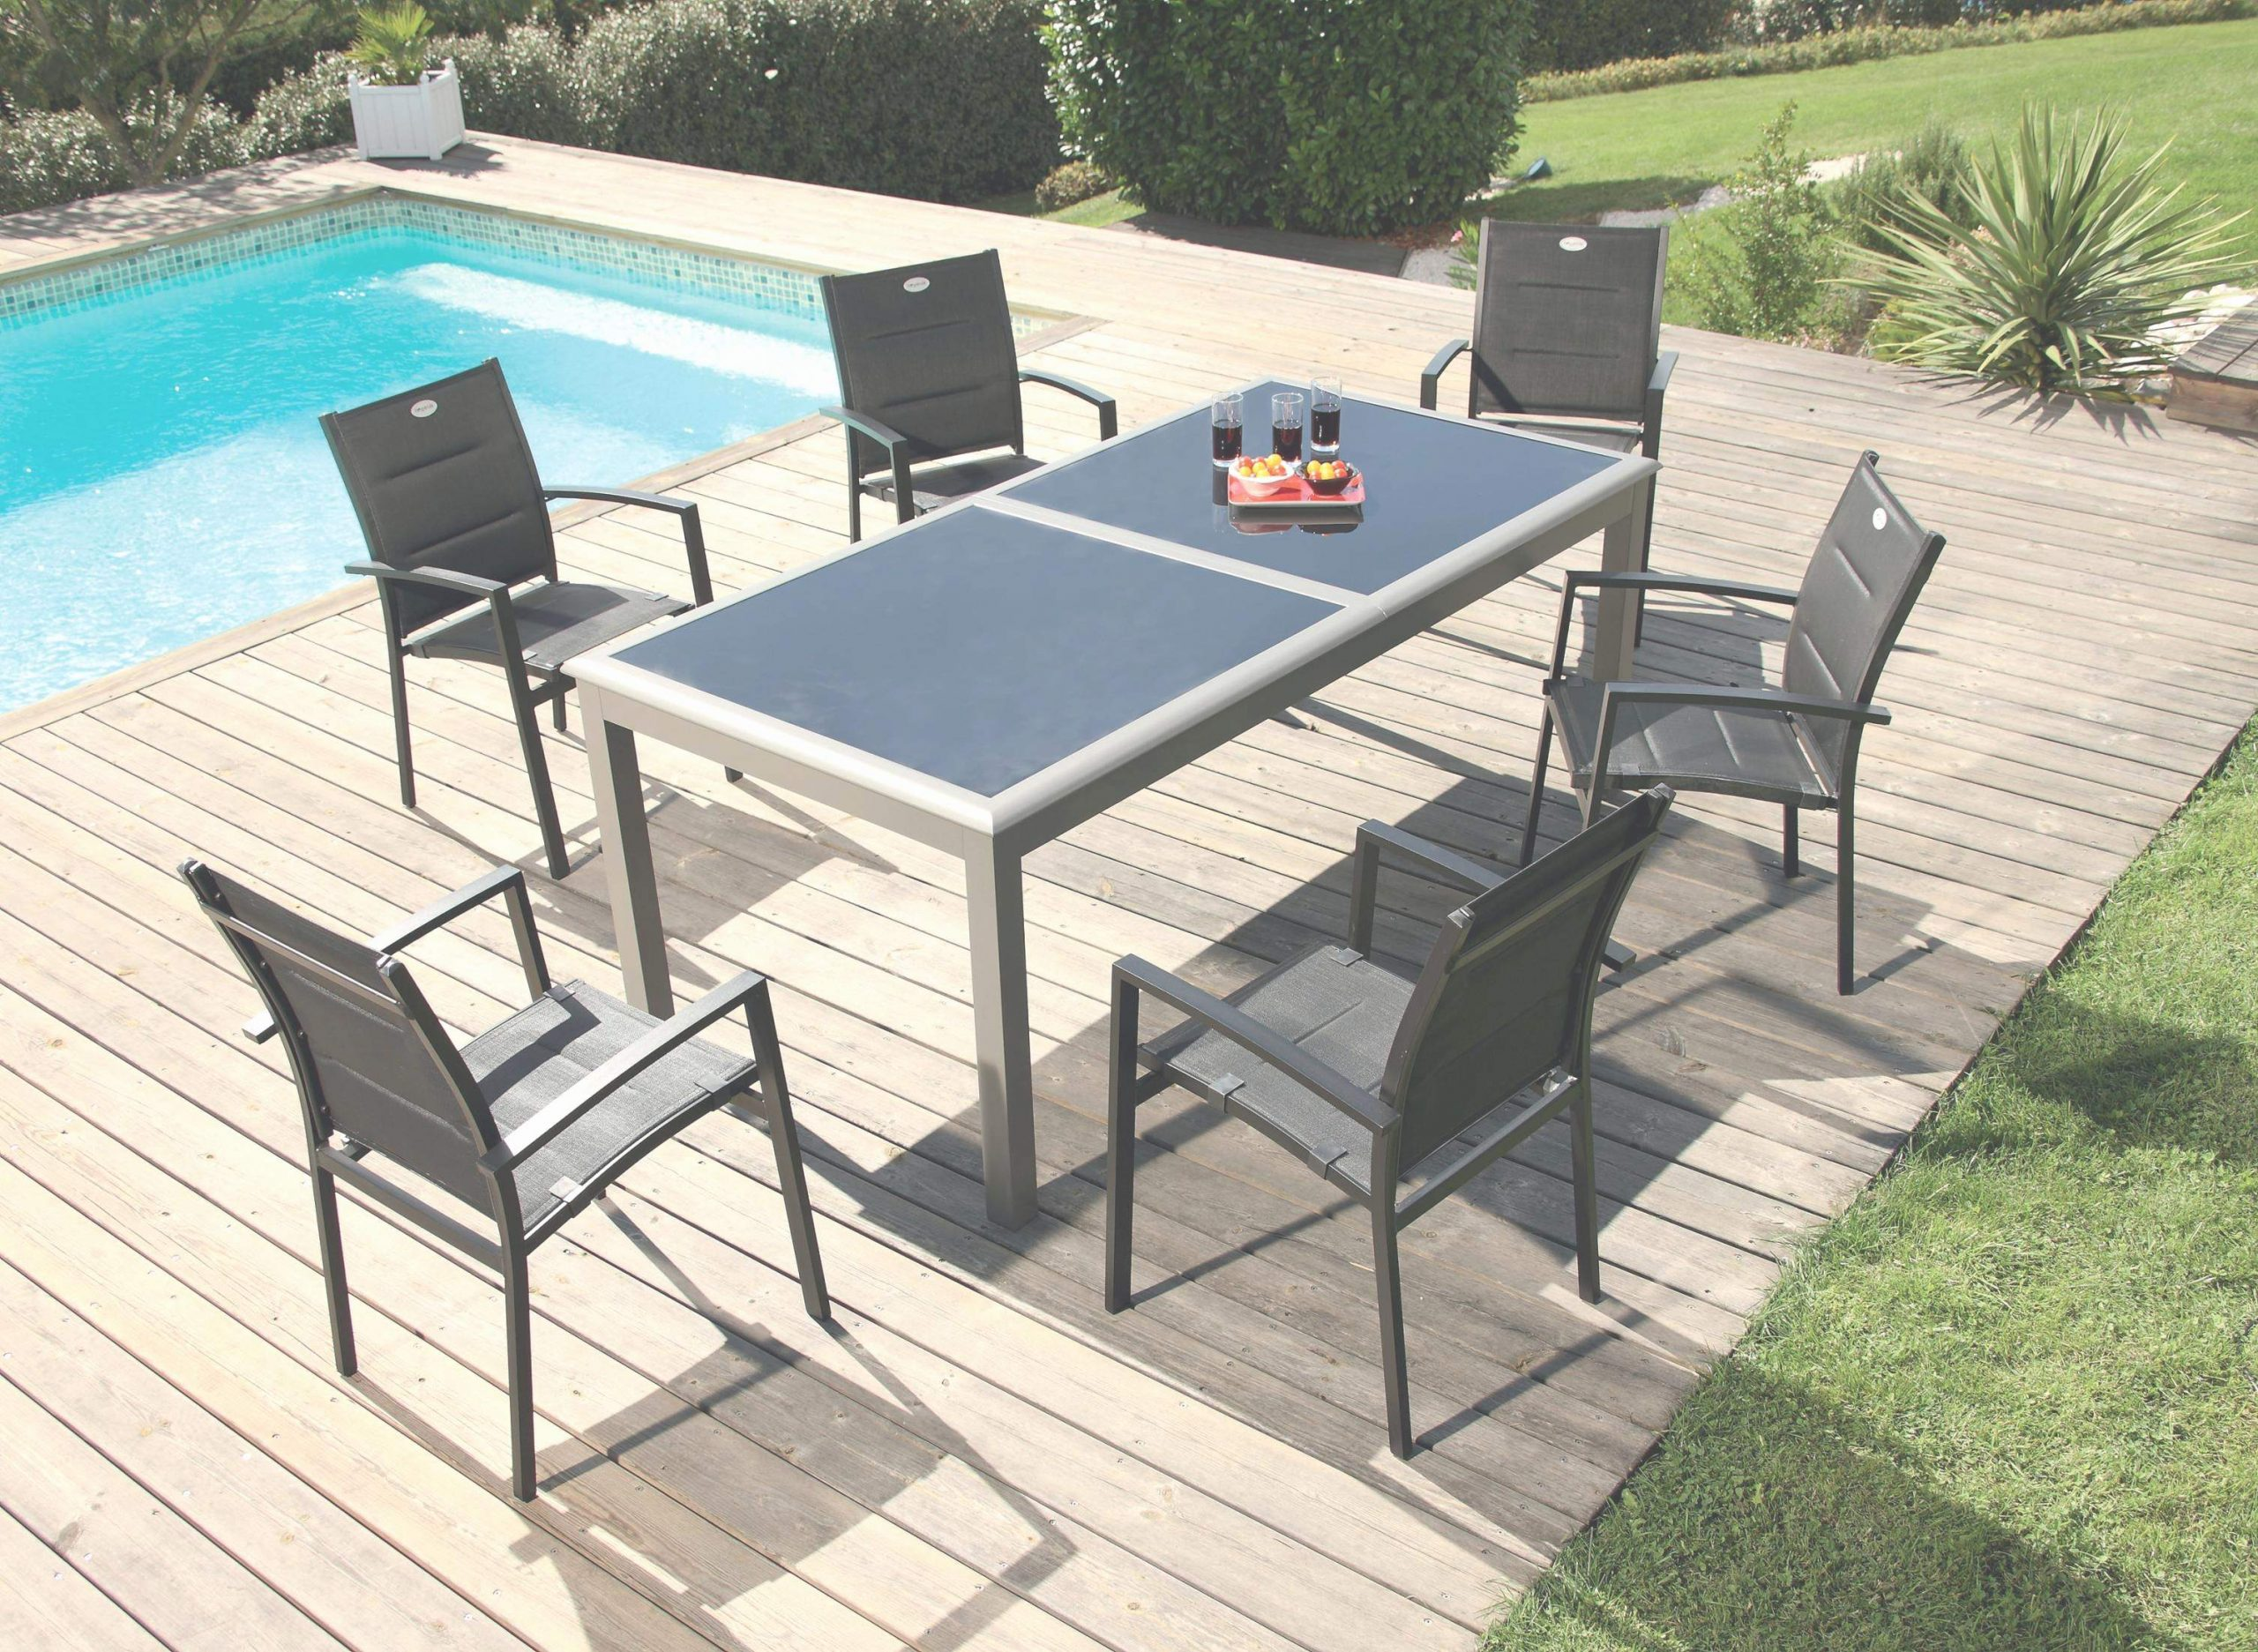 Chaise Centrakor De Jardin Home Brillant Table Pliante ... avec Salon De Jardin Centrakor